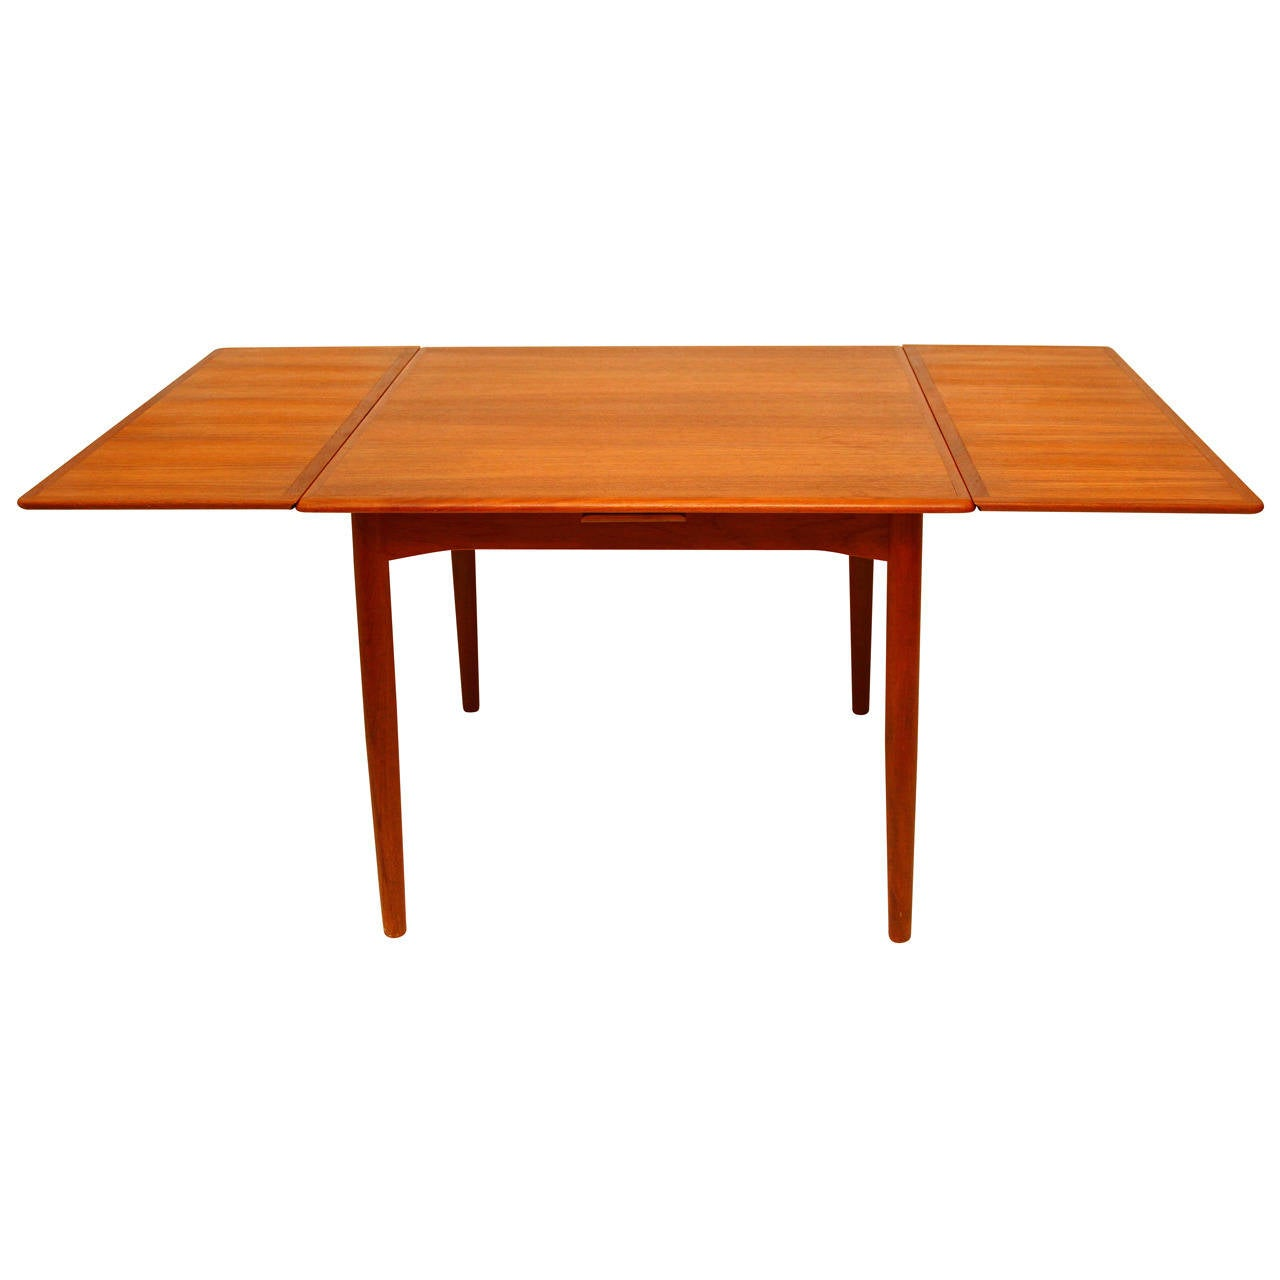 Extension Dining Table Teak Danish Modern at 1stdibs : 1507952l from www.1stdibs.com size 1280 x 1280 jpeg 48kB